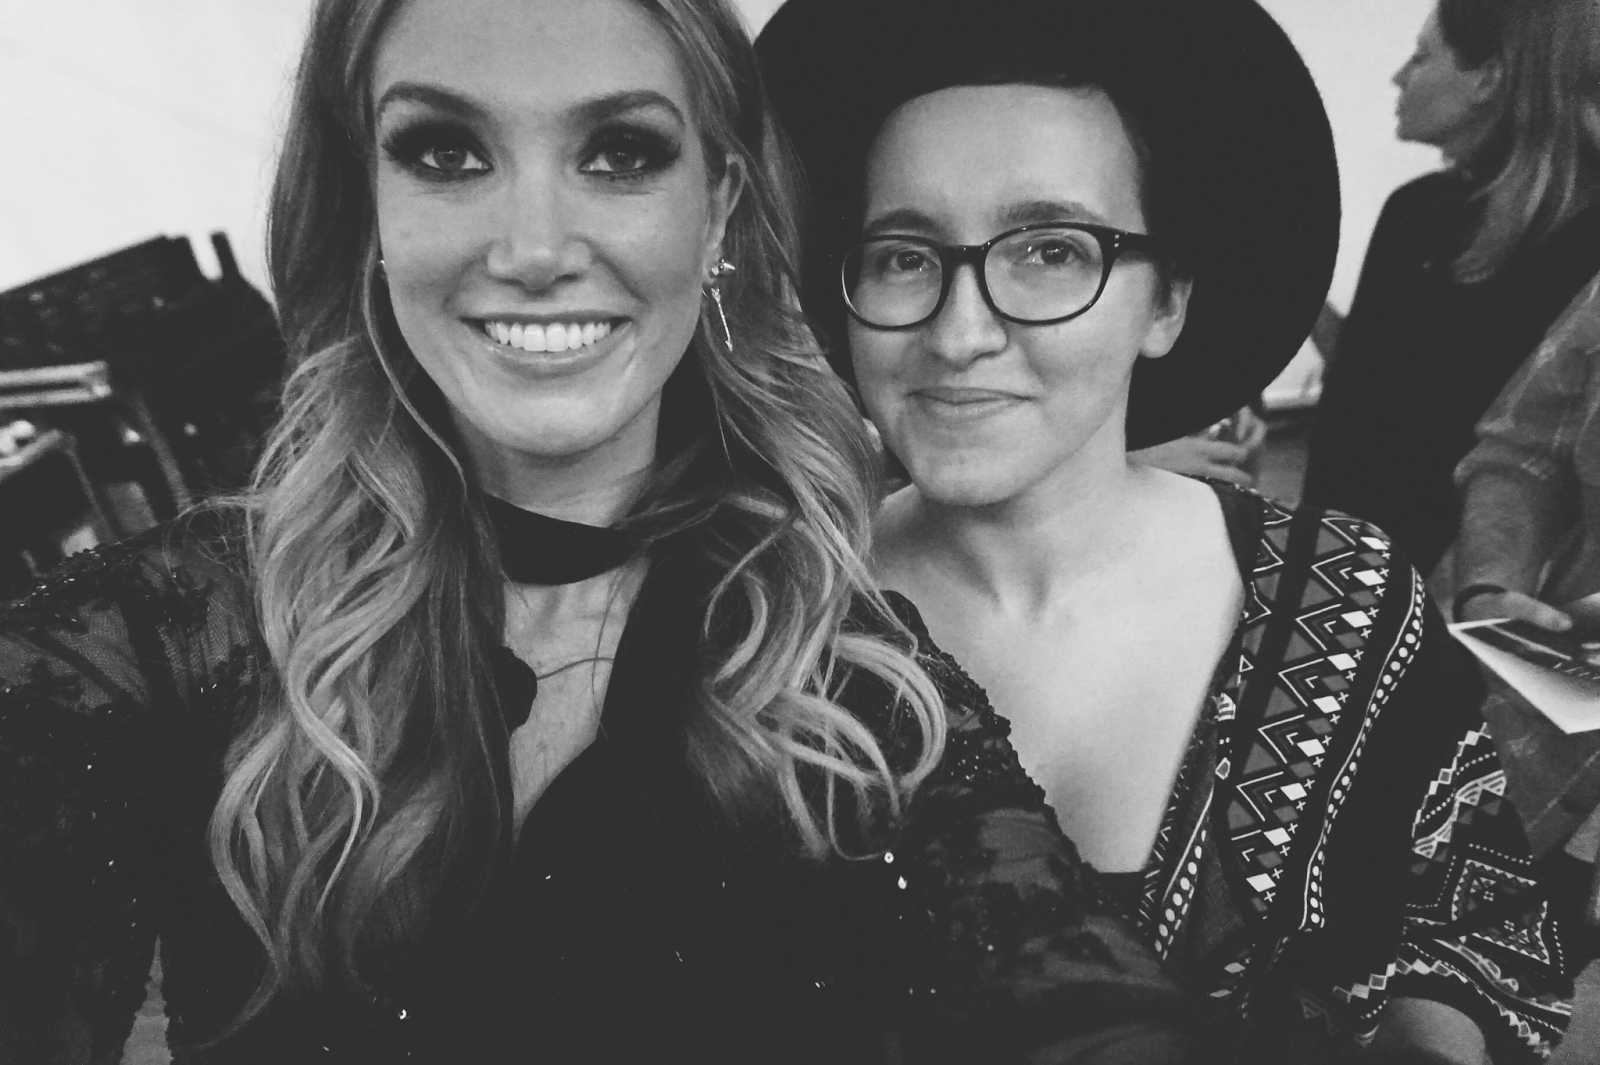 Delta Goodrem, Live Music, Music, Performance, Selfie